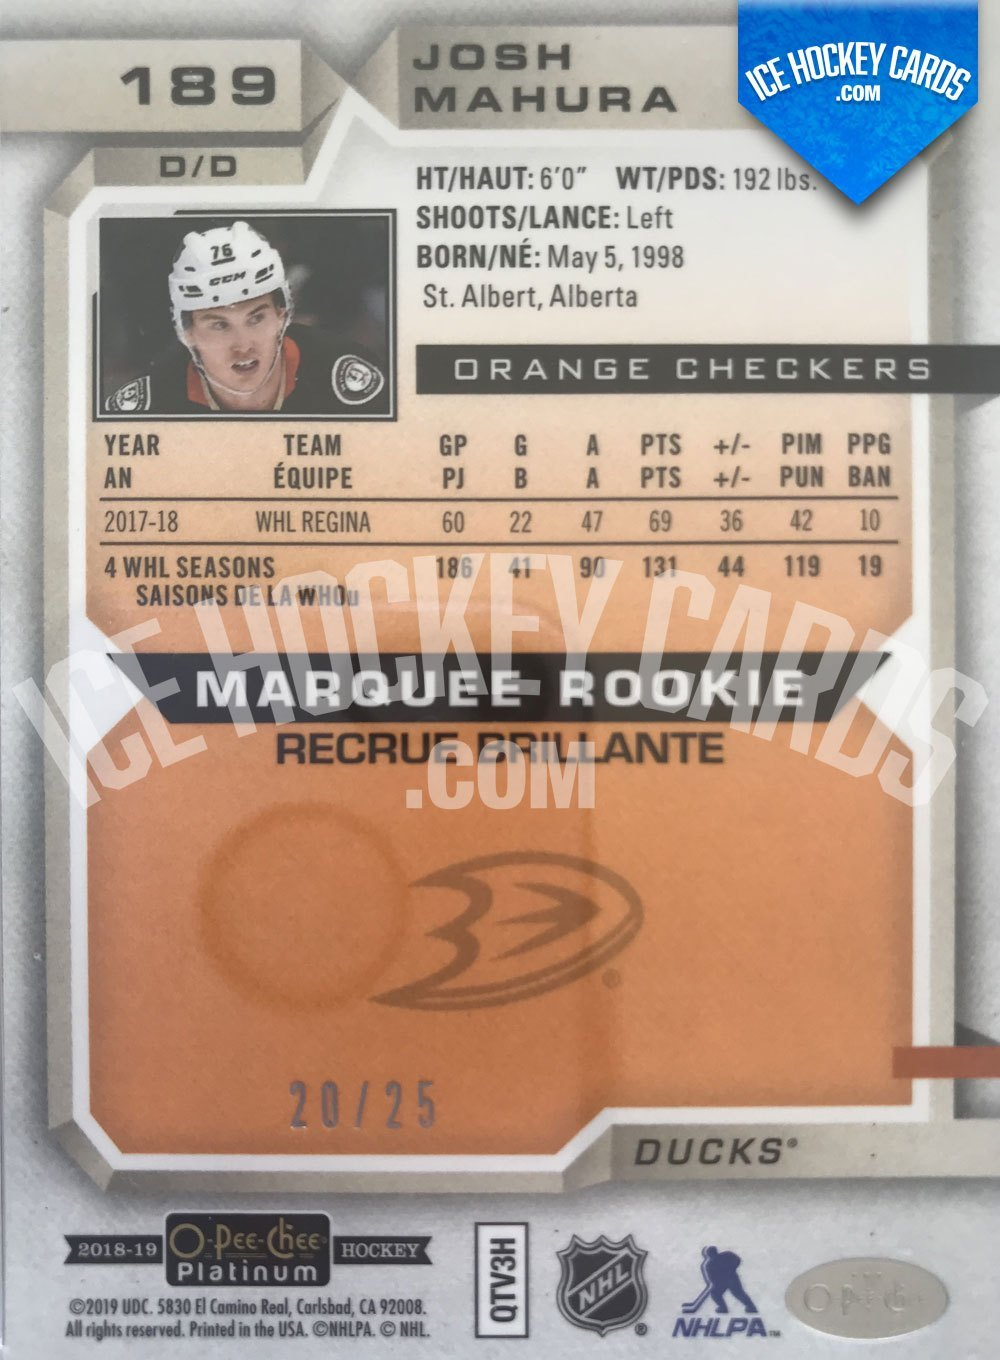 Upper Deck - O-Pee-Chee Platinum 18-19 - Josh Mahura Marquee Rookie Orange Checkers 20 of 25 RARE back